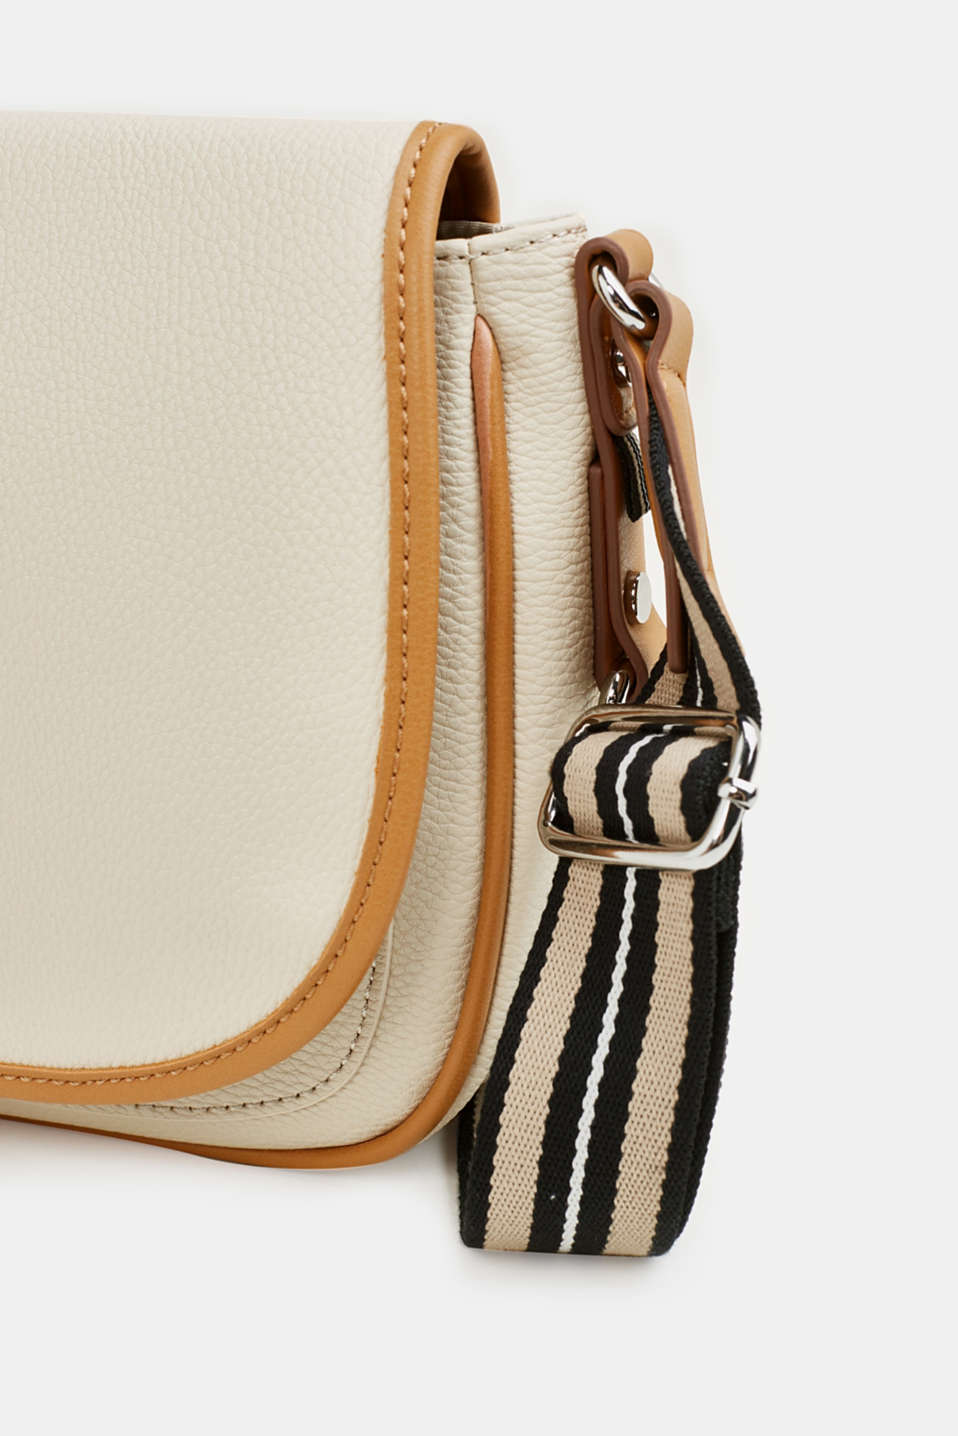 Susie T. shoulder bag, CREAM BEIGE, detail image number 6